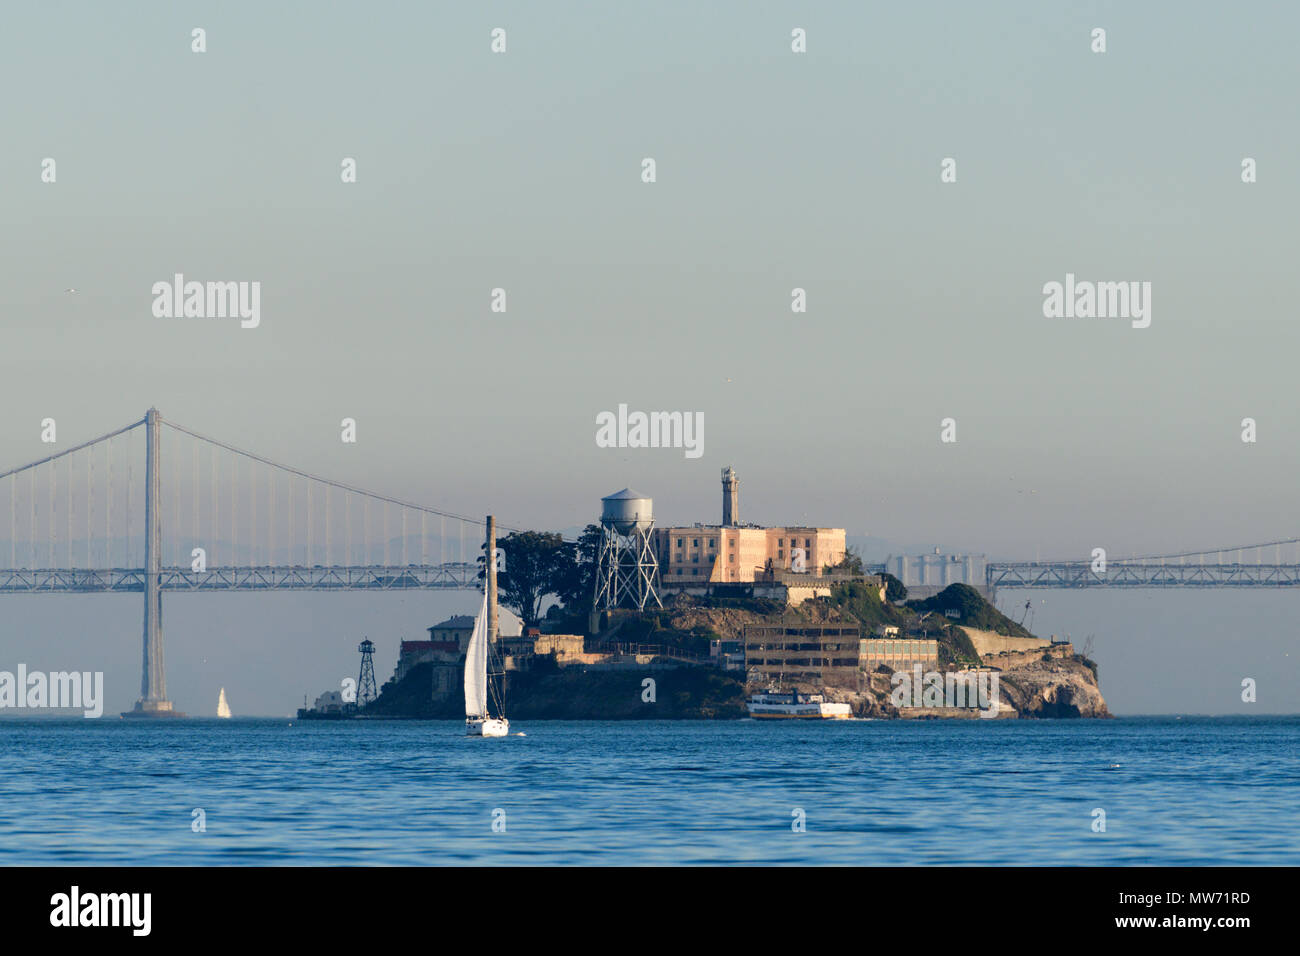 Alcatraz island with the new Bay Bridge in the background and sailboat on the water as seen from the water in San Francisco Bay - Stock Image